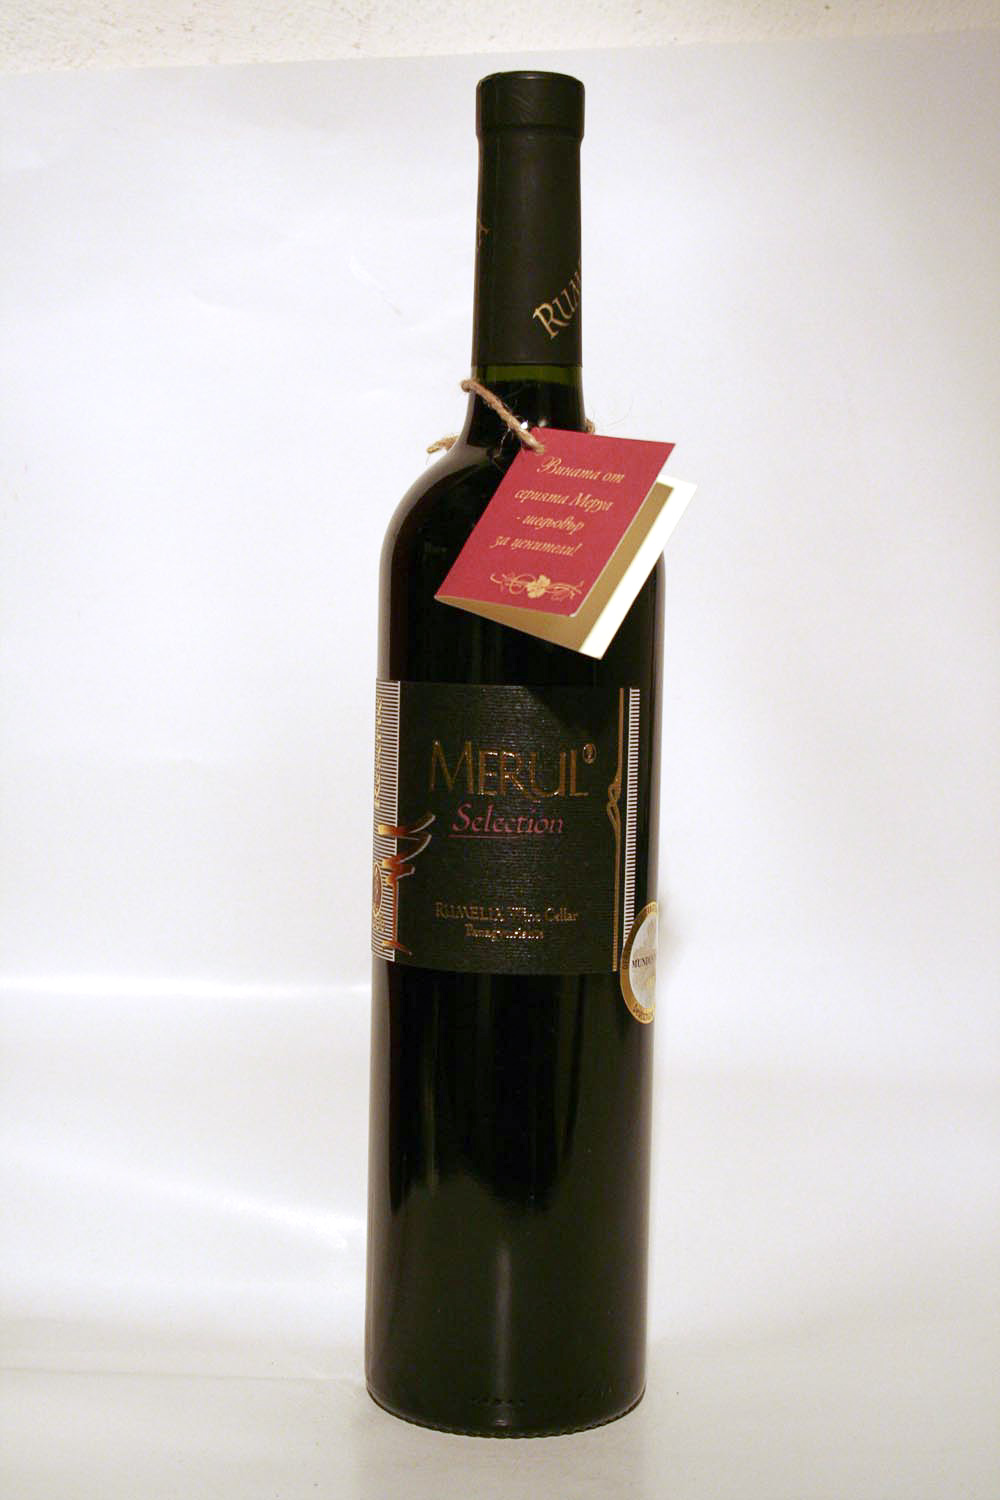 Merul Reserve Selection 2006